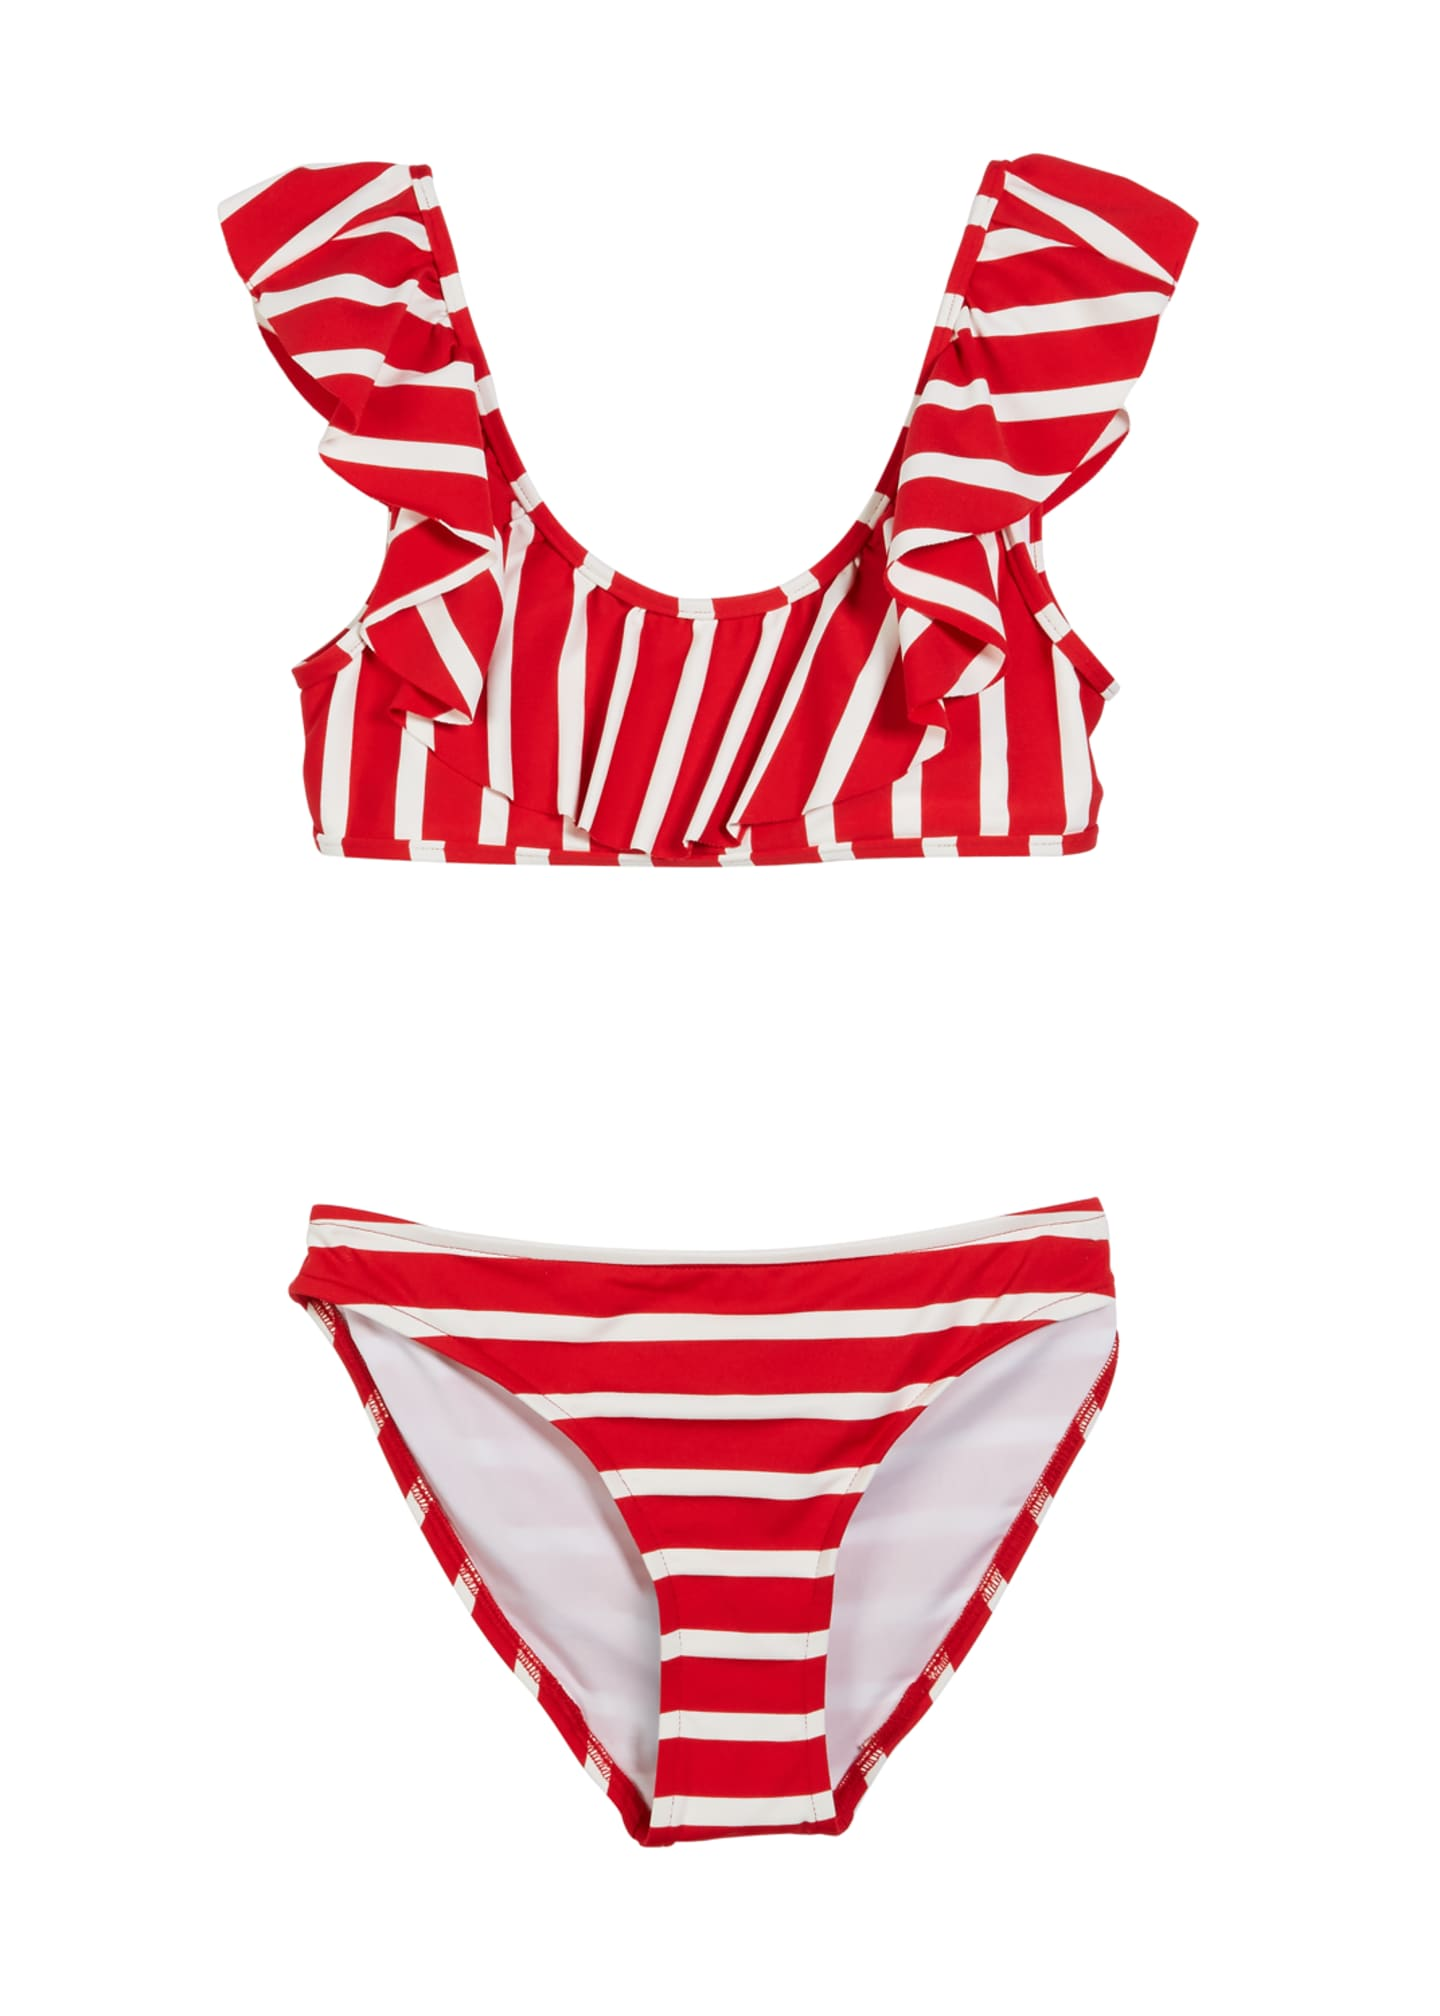 Milly Minis Striped Ruffle Pinafore Two-Piece Swimsuit, Size